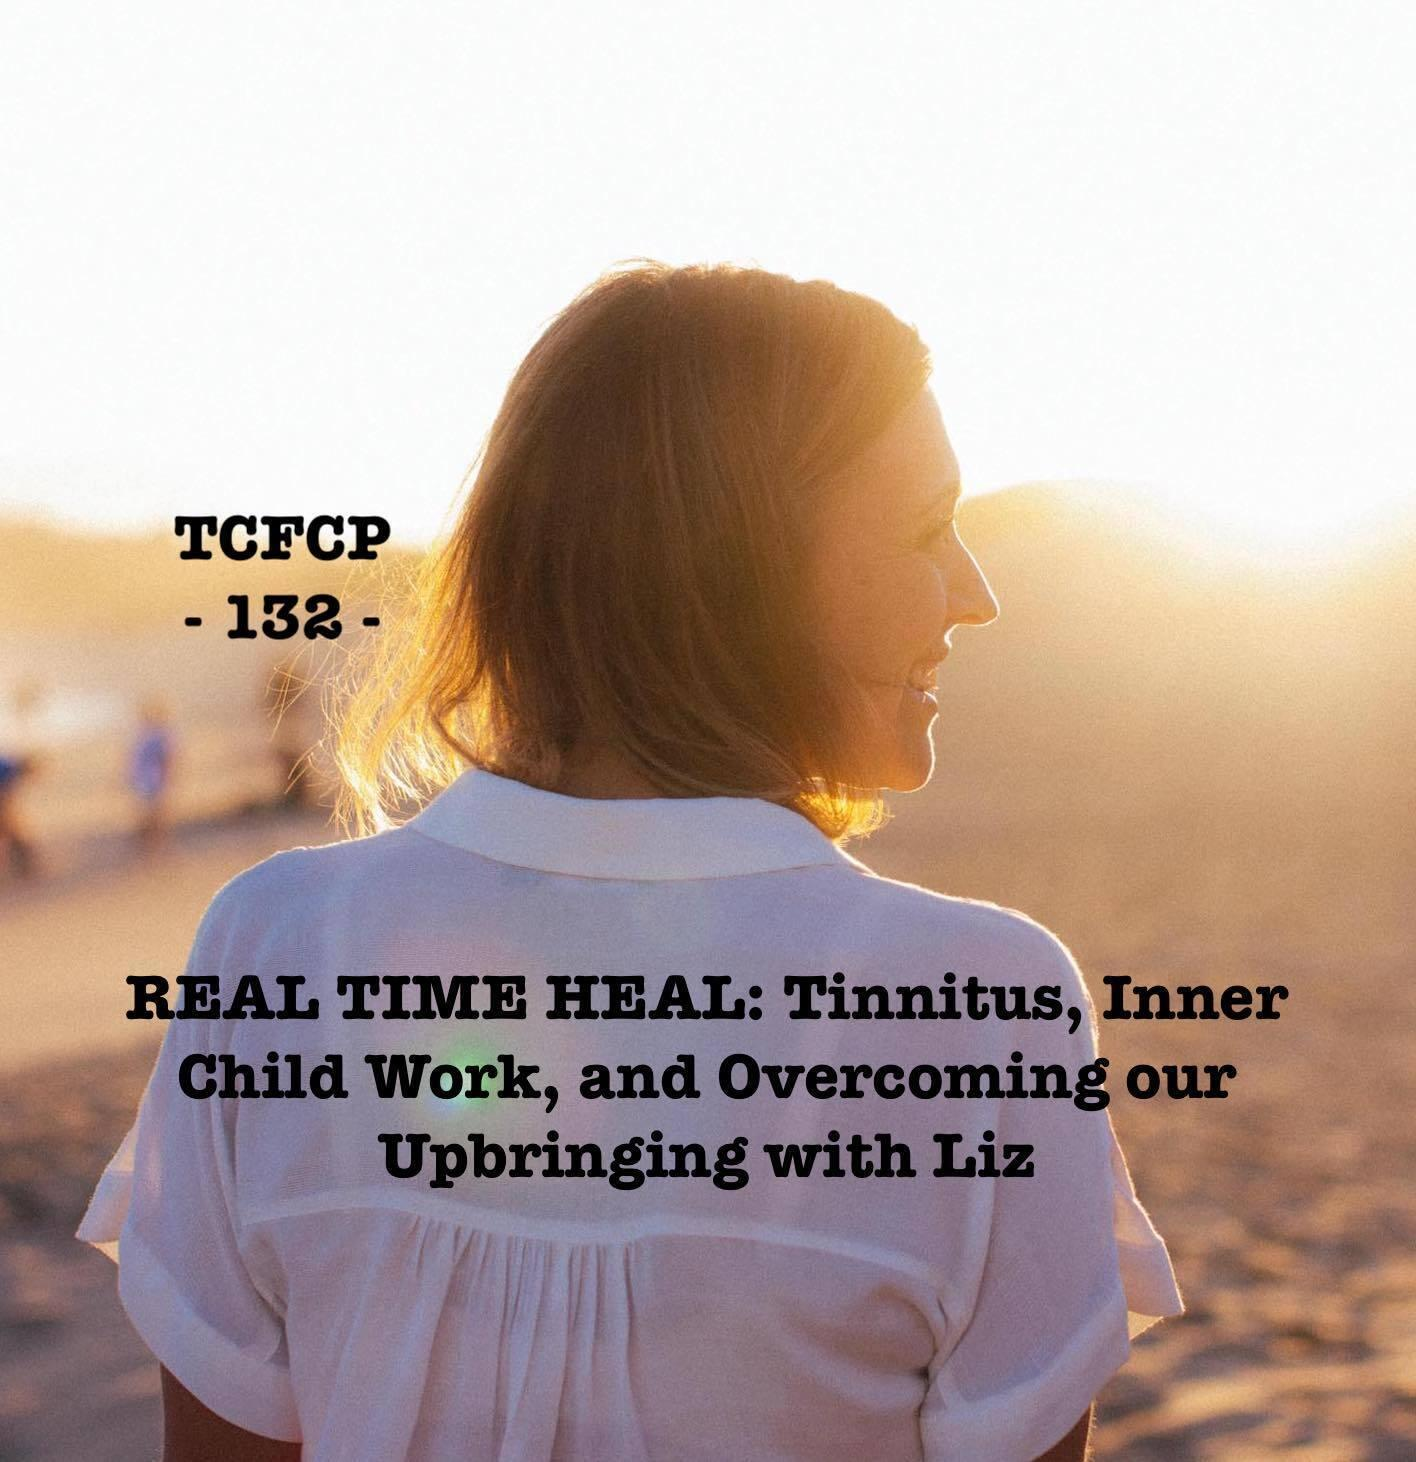 132: EPISODE 132 - REAL TIME HEAL: Tinnitus, Inner Child Work, and Overcoming Our Upbringing with Liz